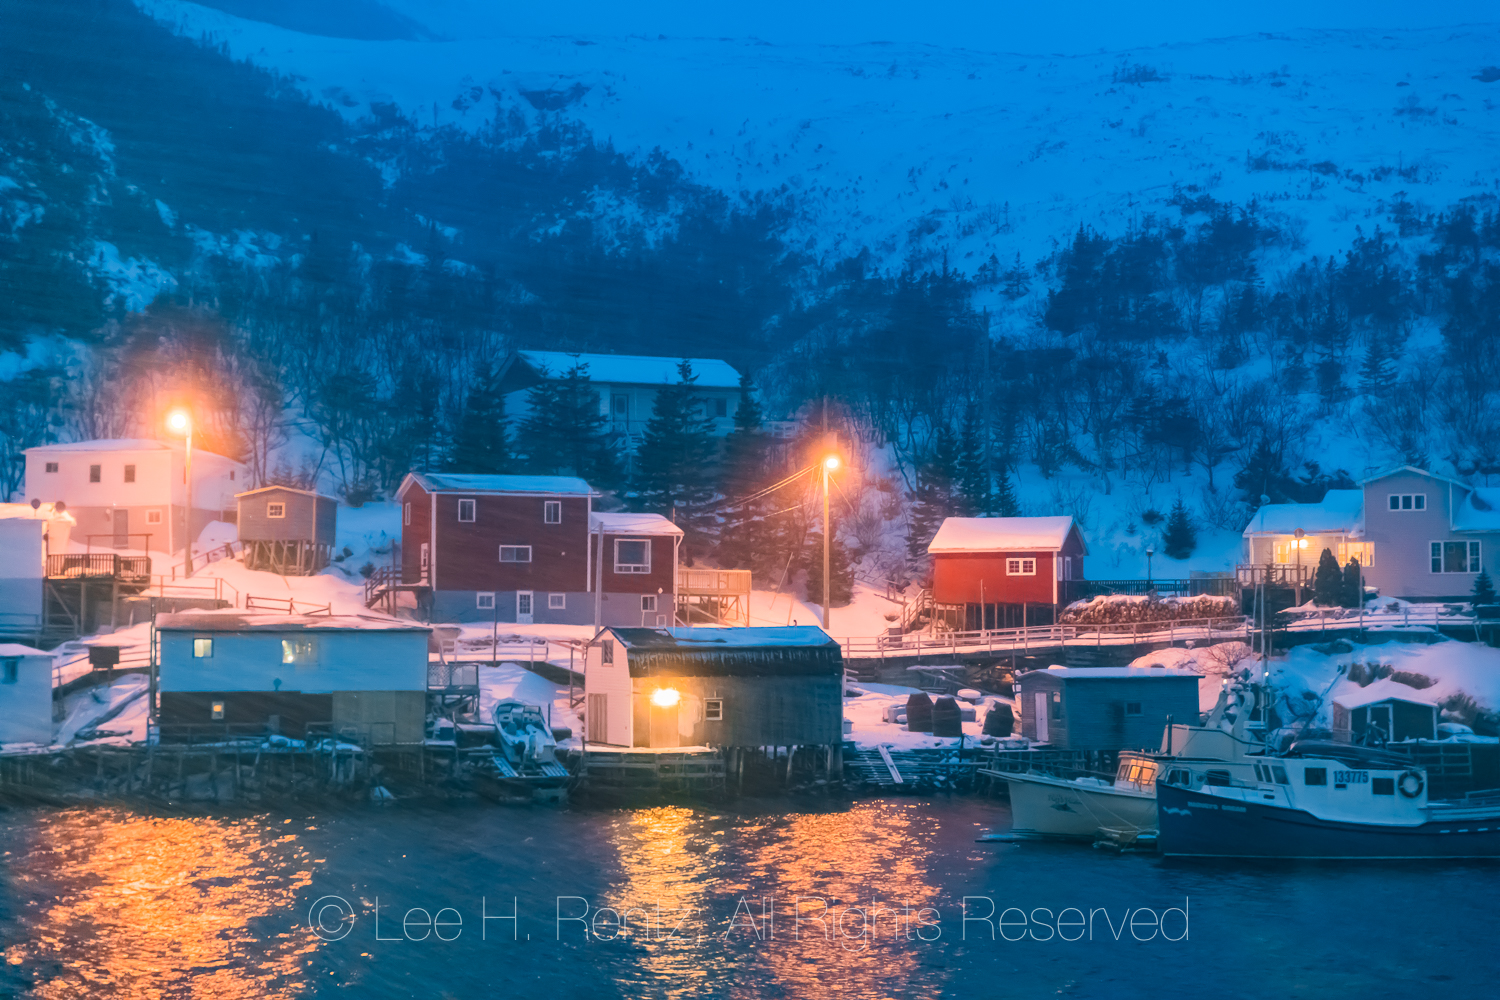 Snowstorm Hitting Outport of Francois, Newfoundland